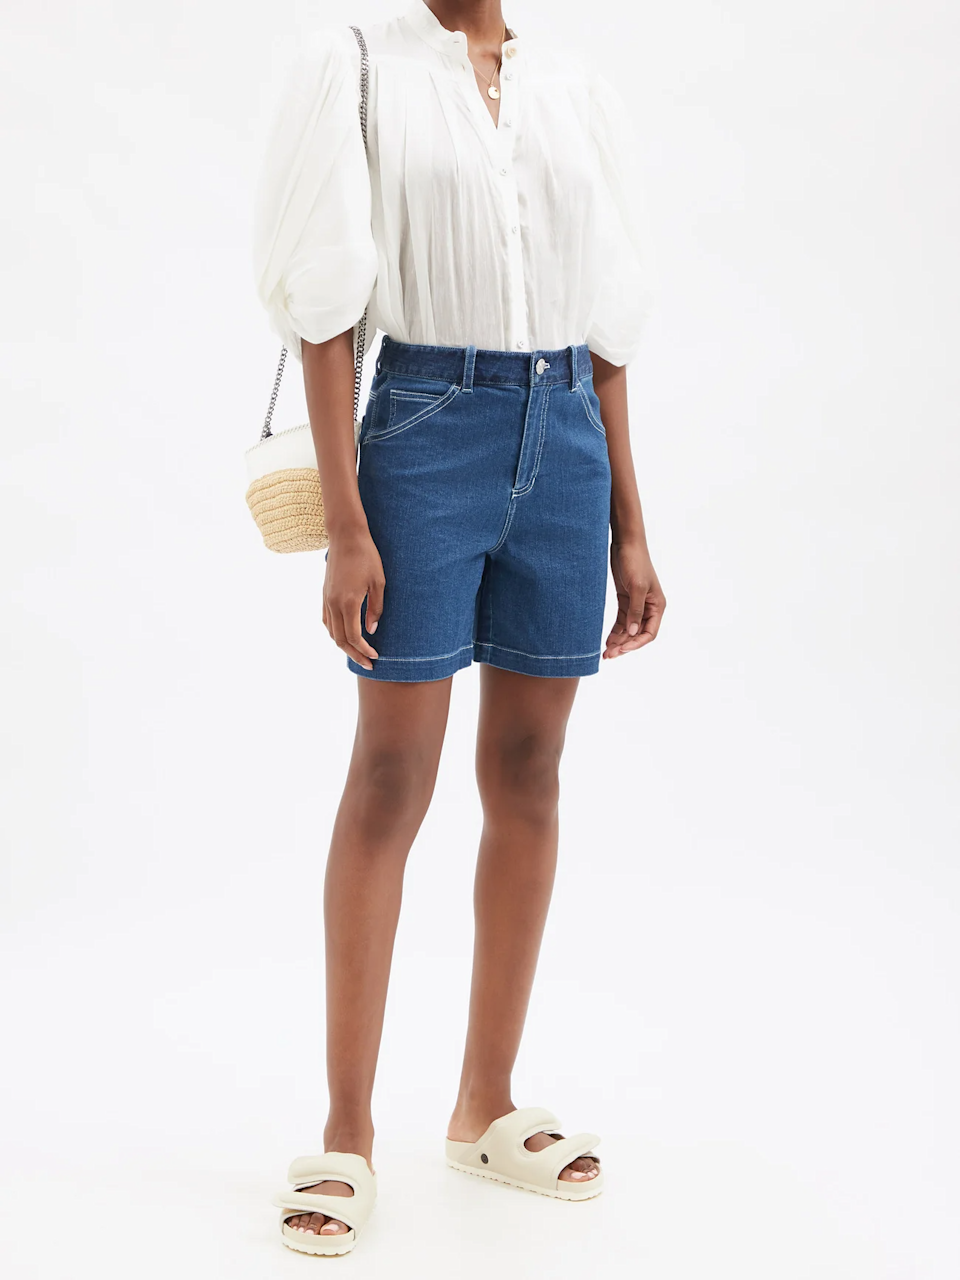 """<br><br><strong>Staud</strong> Painter High-Rise Denim Shorts, $, available at <a href=""""https://go.skimresources.com/?id=30283X879131&url=https%3A%2F%2Fwww.matchesfashion.com%2Fus%2Fproducts%2FStaud-Painter-high-rise-denim-shorts-1422044"""" rel=""""nofollow noopener"""" target=""""_blank"""" data-ylk=""""slk:Matches Fashion"""" class=""""link rapid-noclick-resp"""">Matches Fashion</a>"""